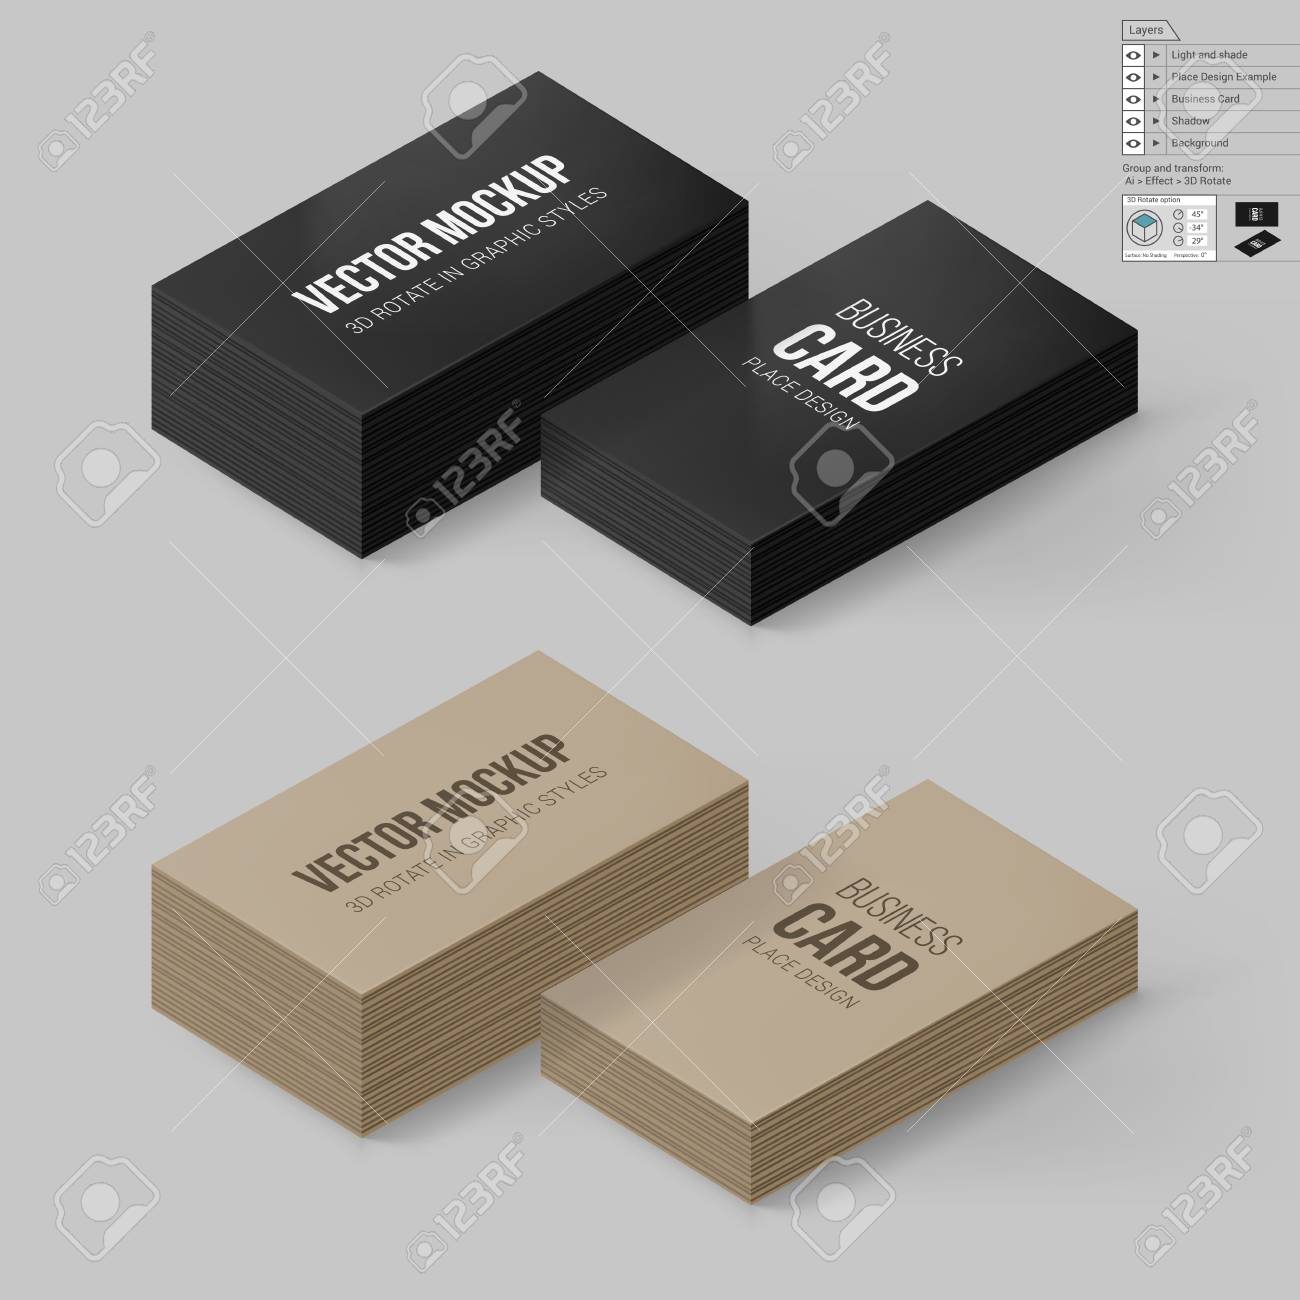 Business cards template in black and brown colors corporate business cards template in black and brown colors corporate identity branding mock up with flashek Gallery